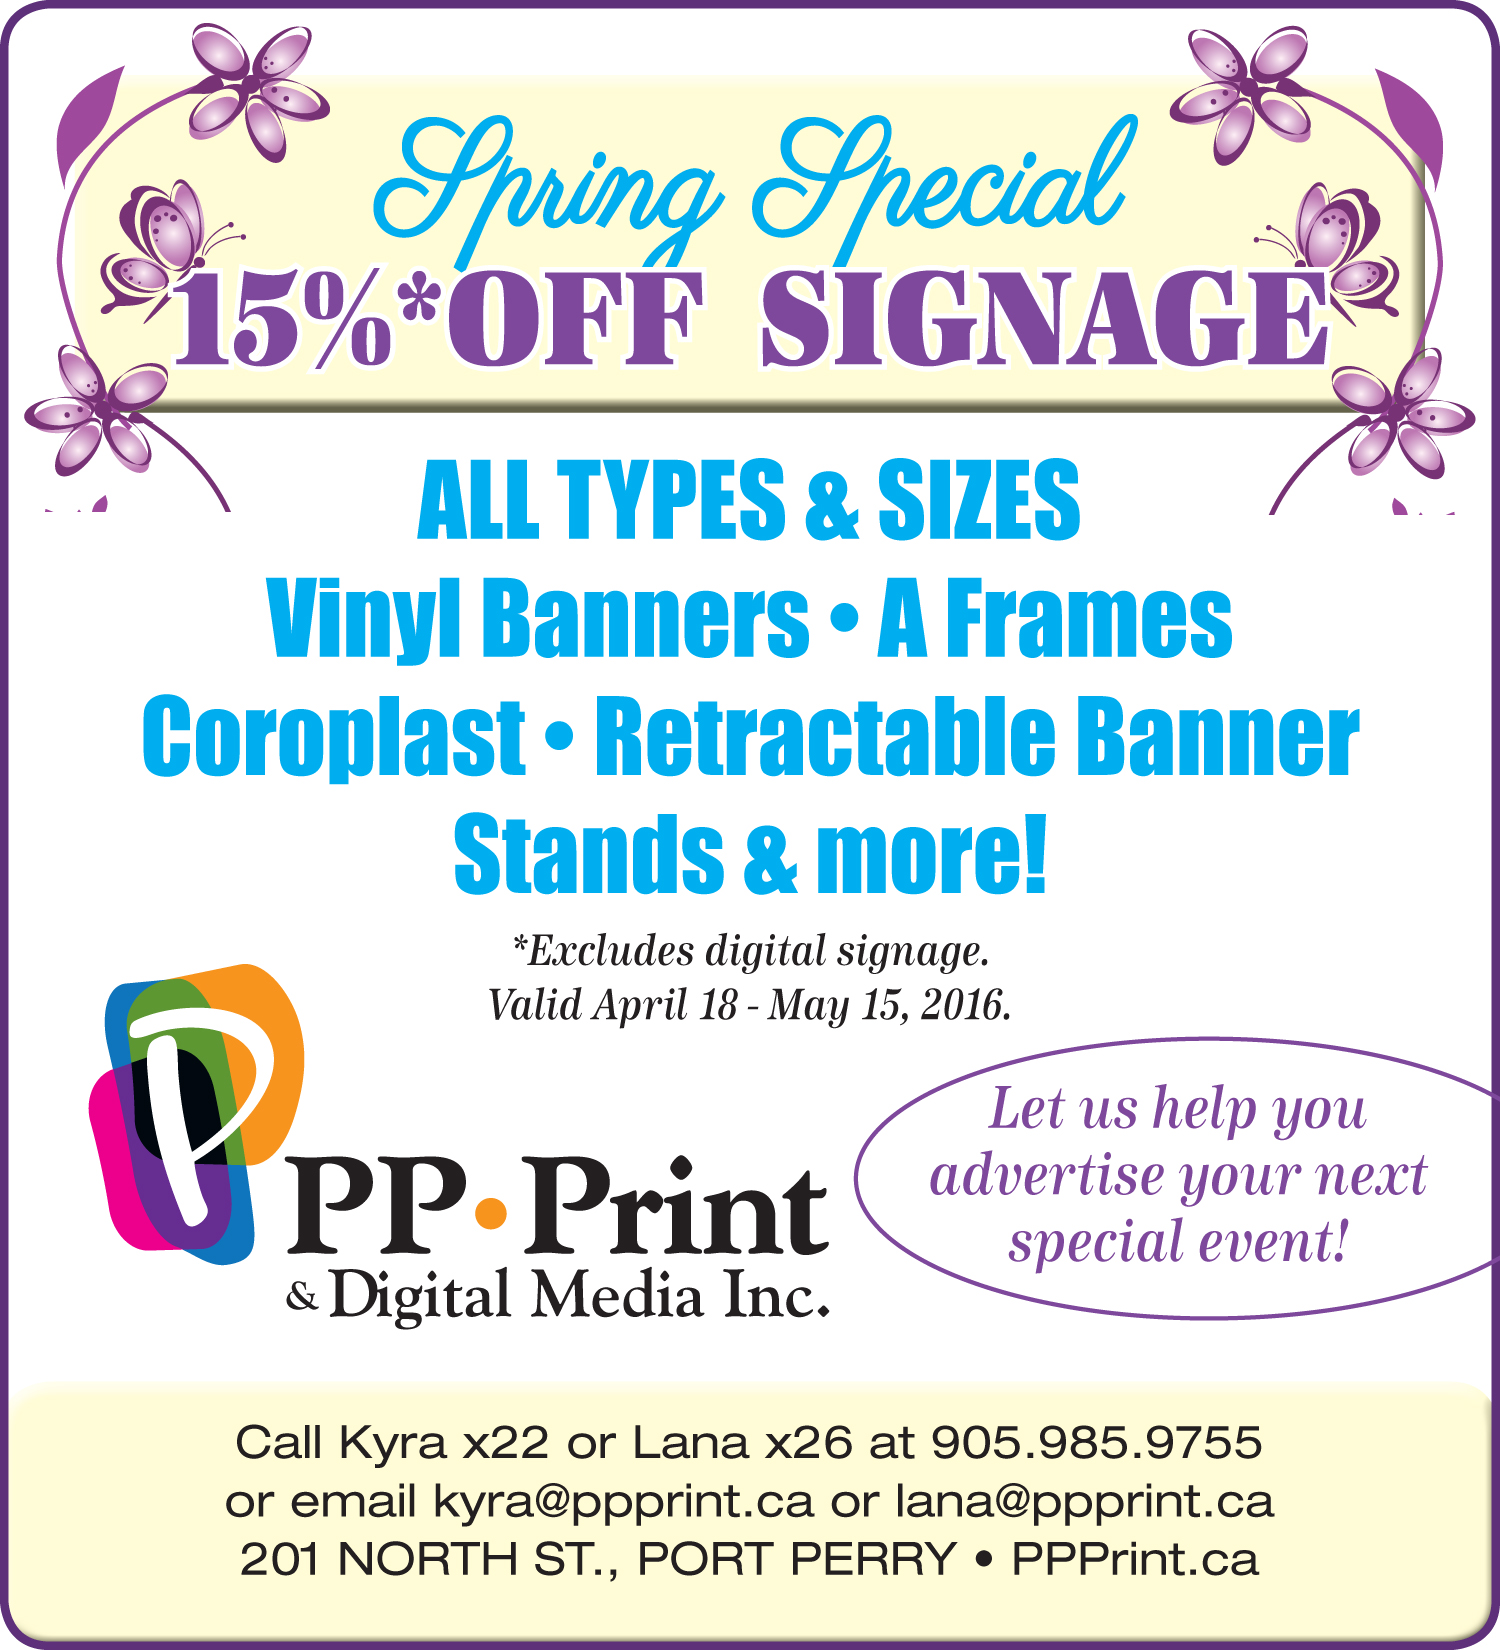 PPPrint Signage colour.indd